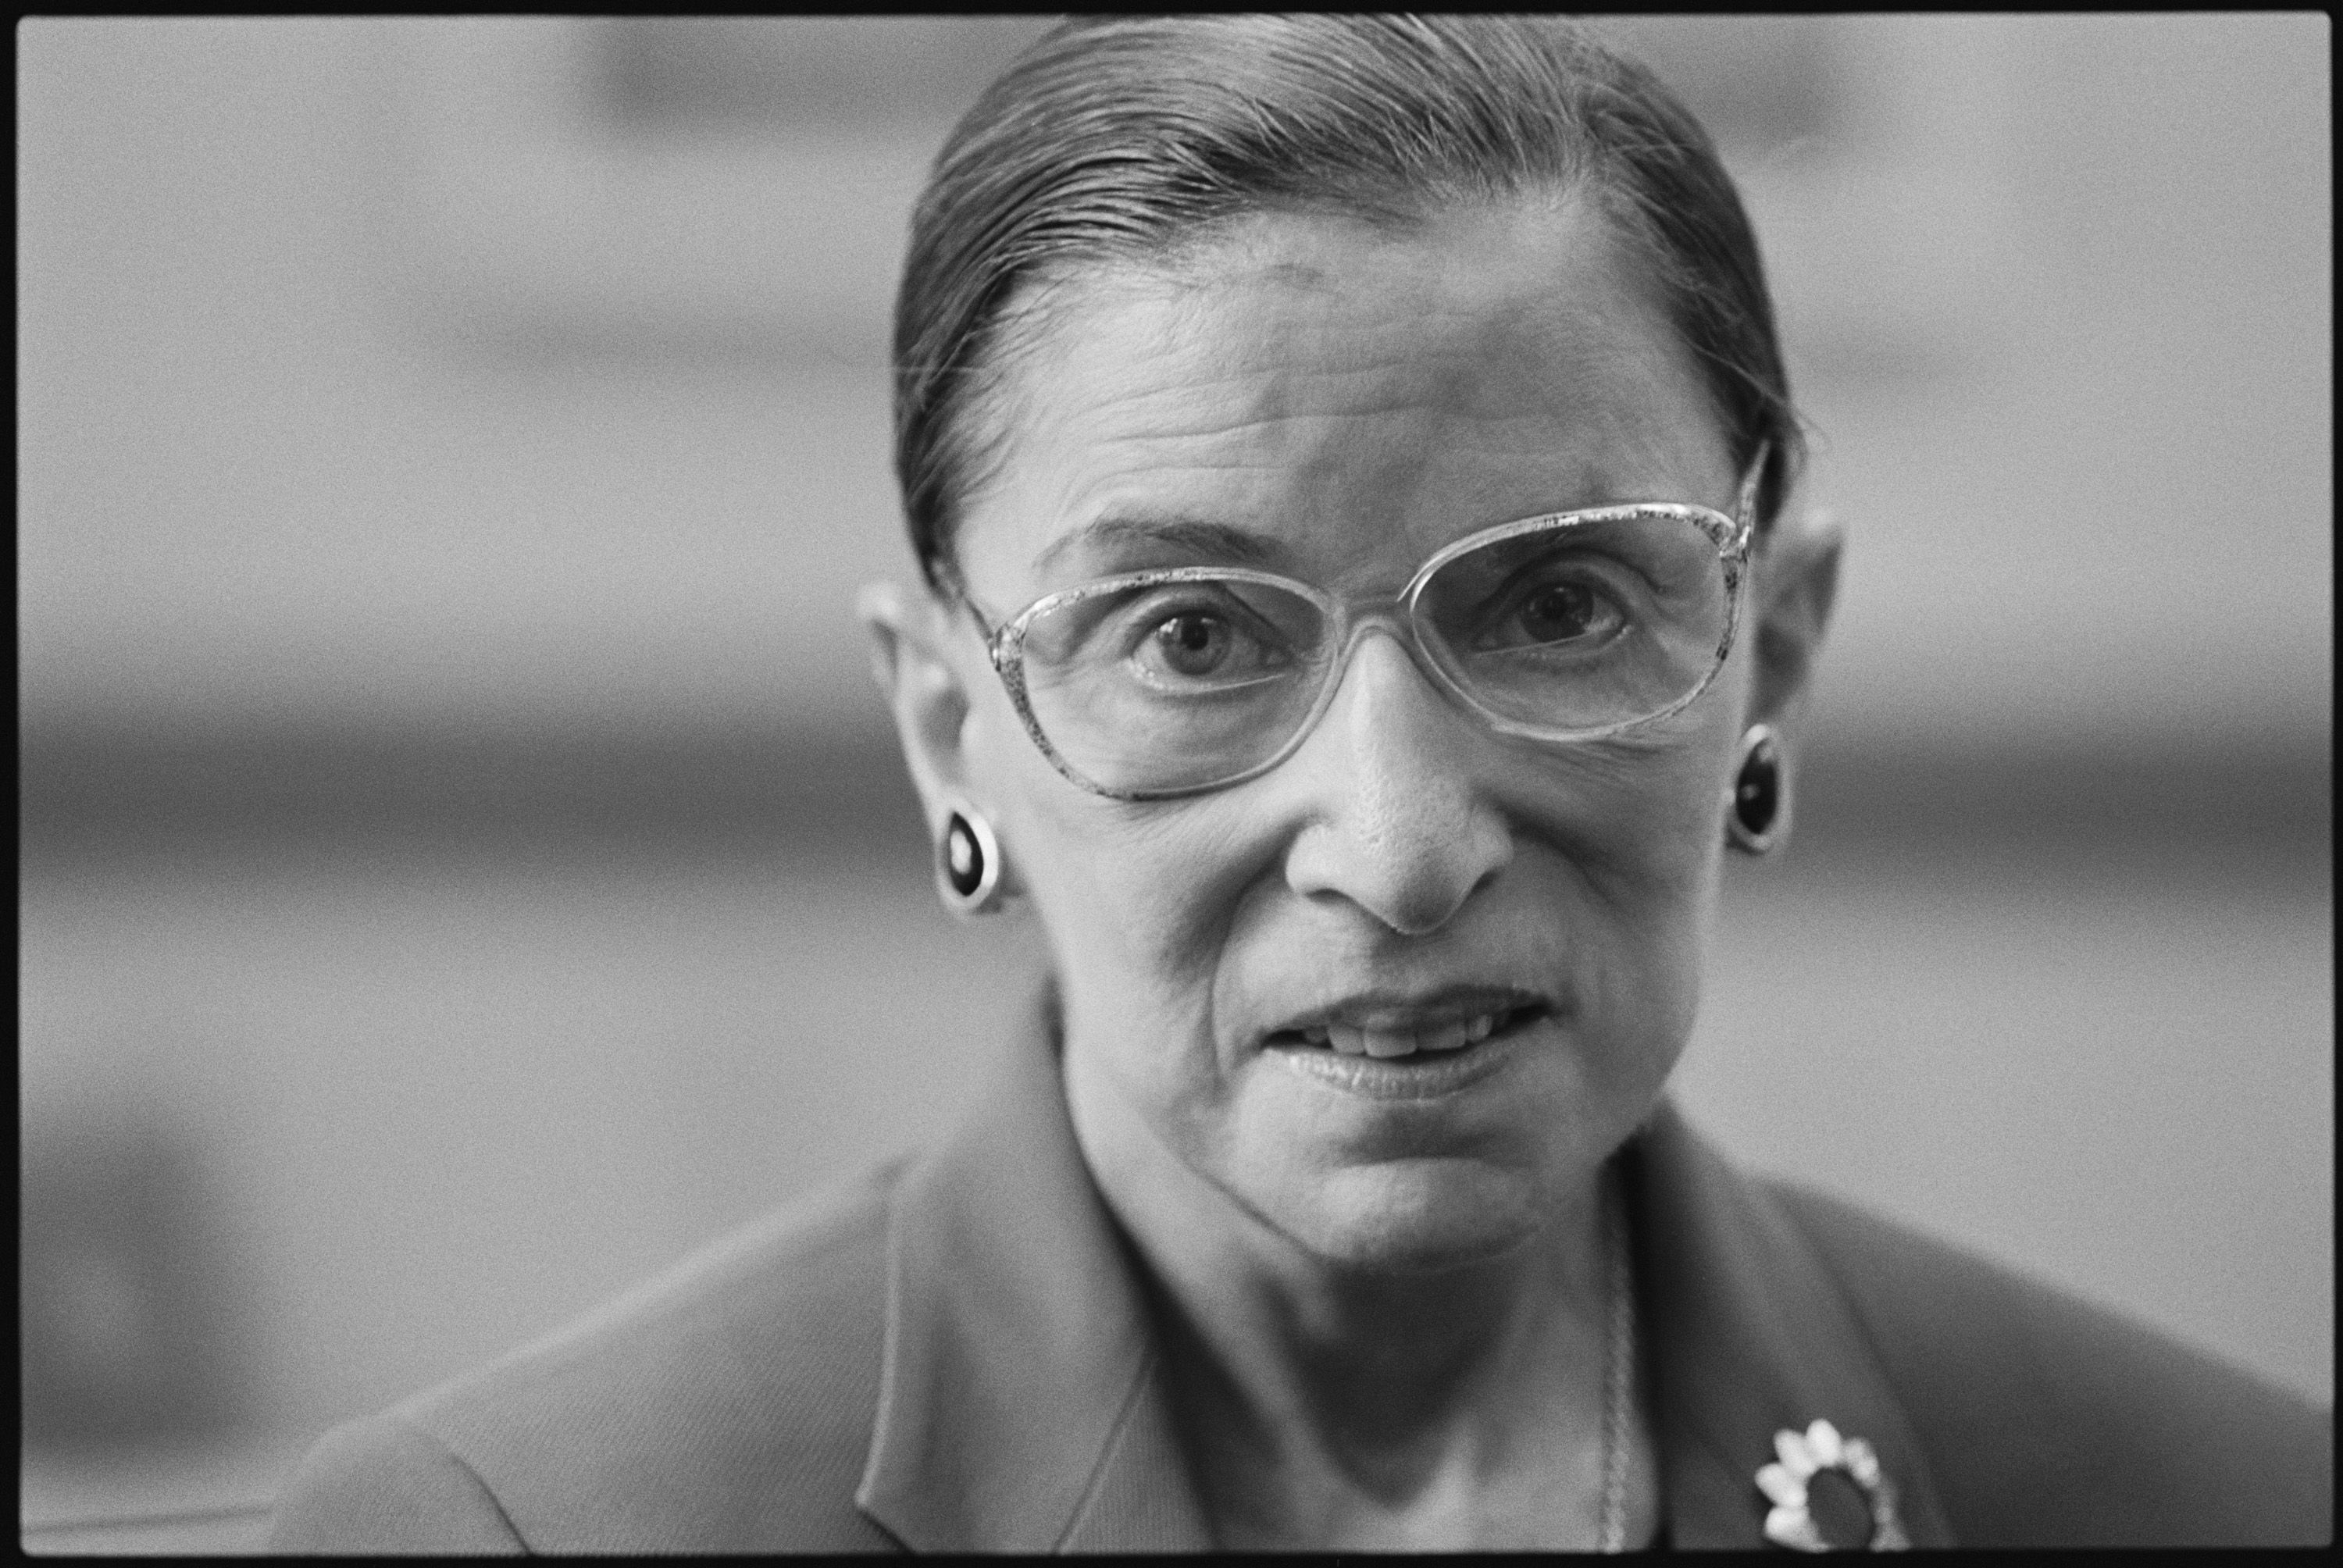 Celebrities and Politicians Pay Tribute to Justice Ruth Bader Ginsburg